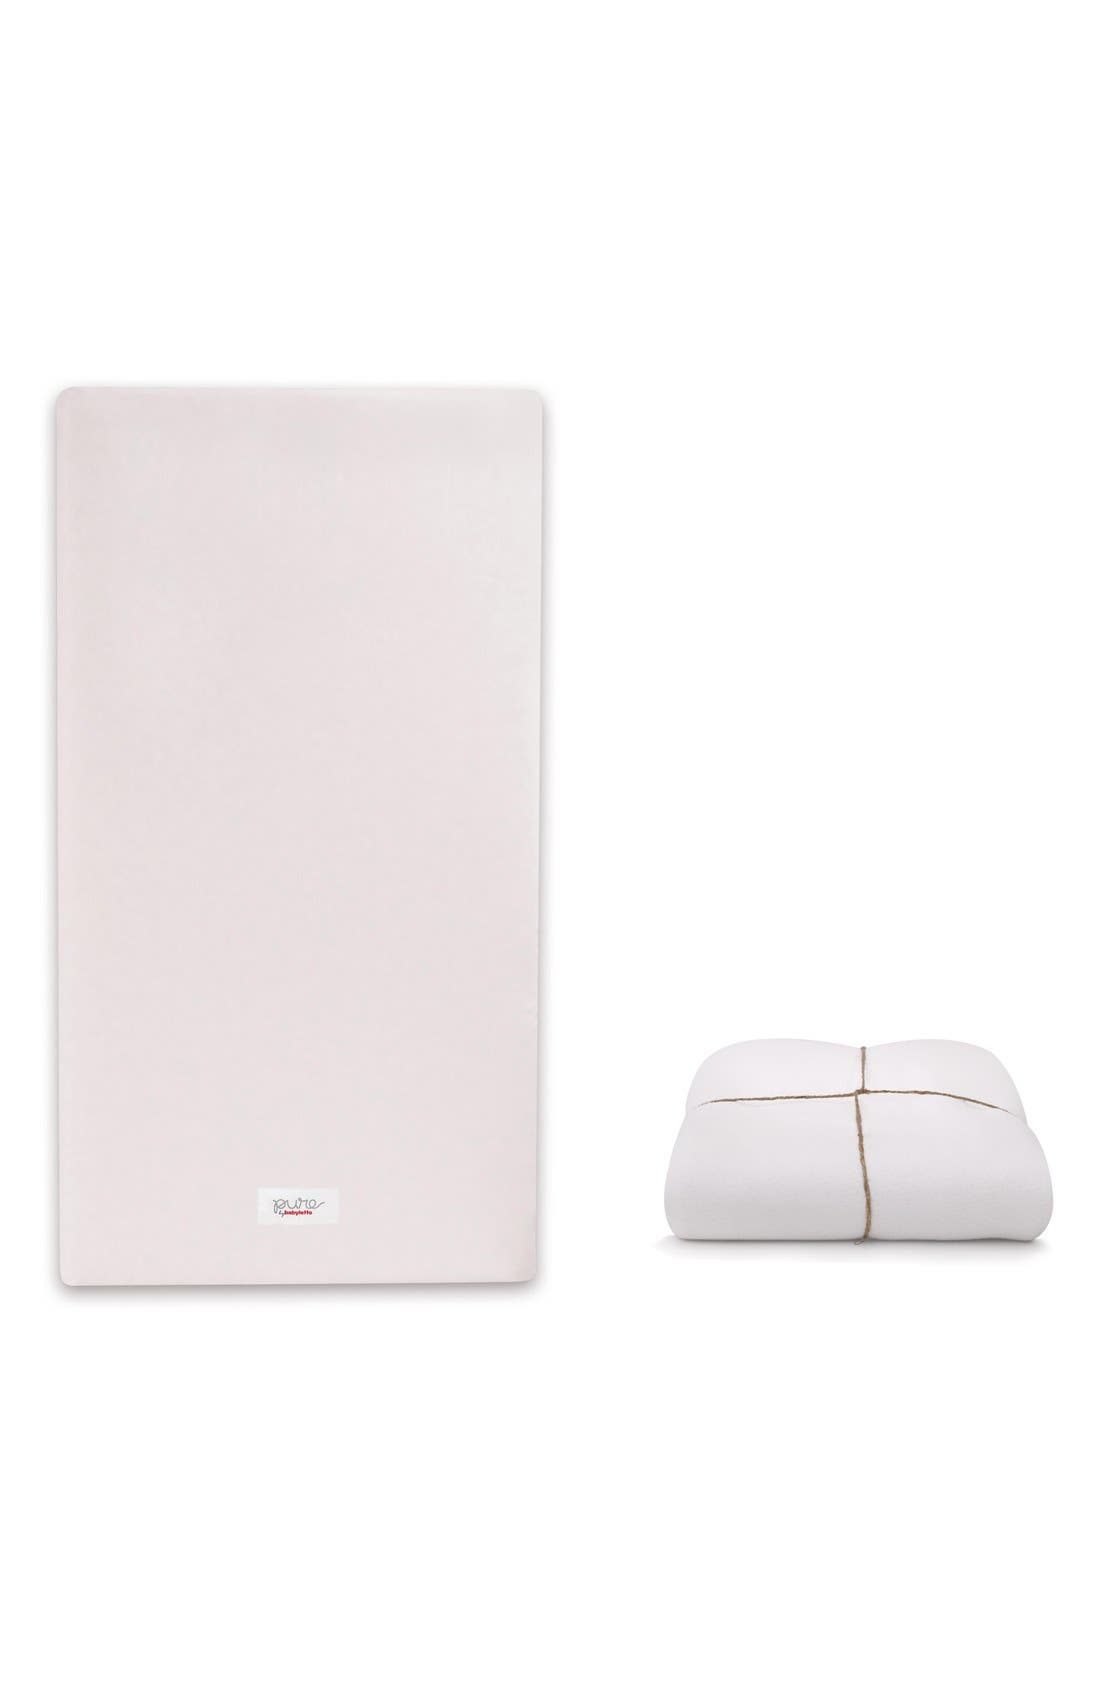 'Pure Core' Nontoxic Crib Mattress & Water Repellent SMART Cover,                             Main thumbnail 1, color,                             100